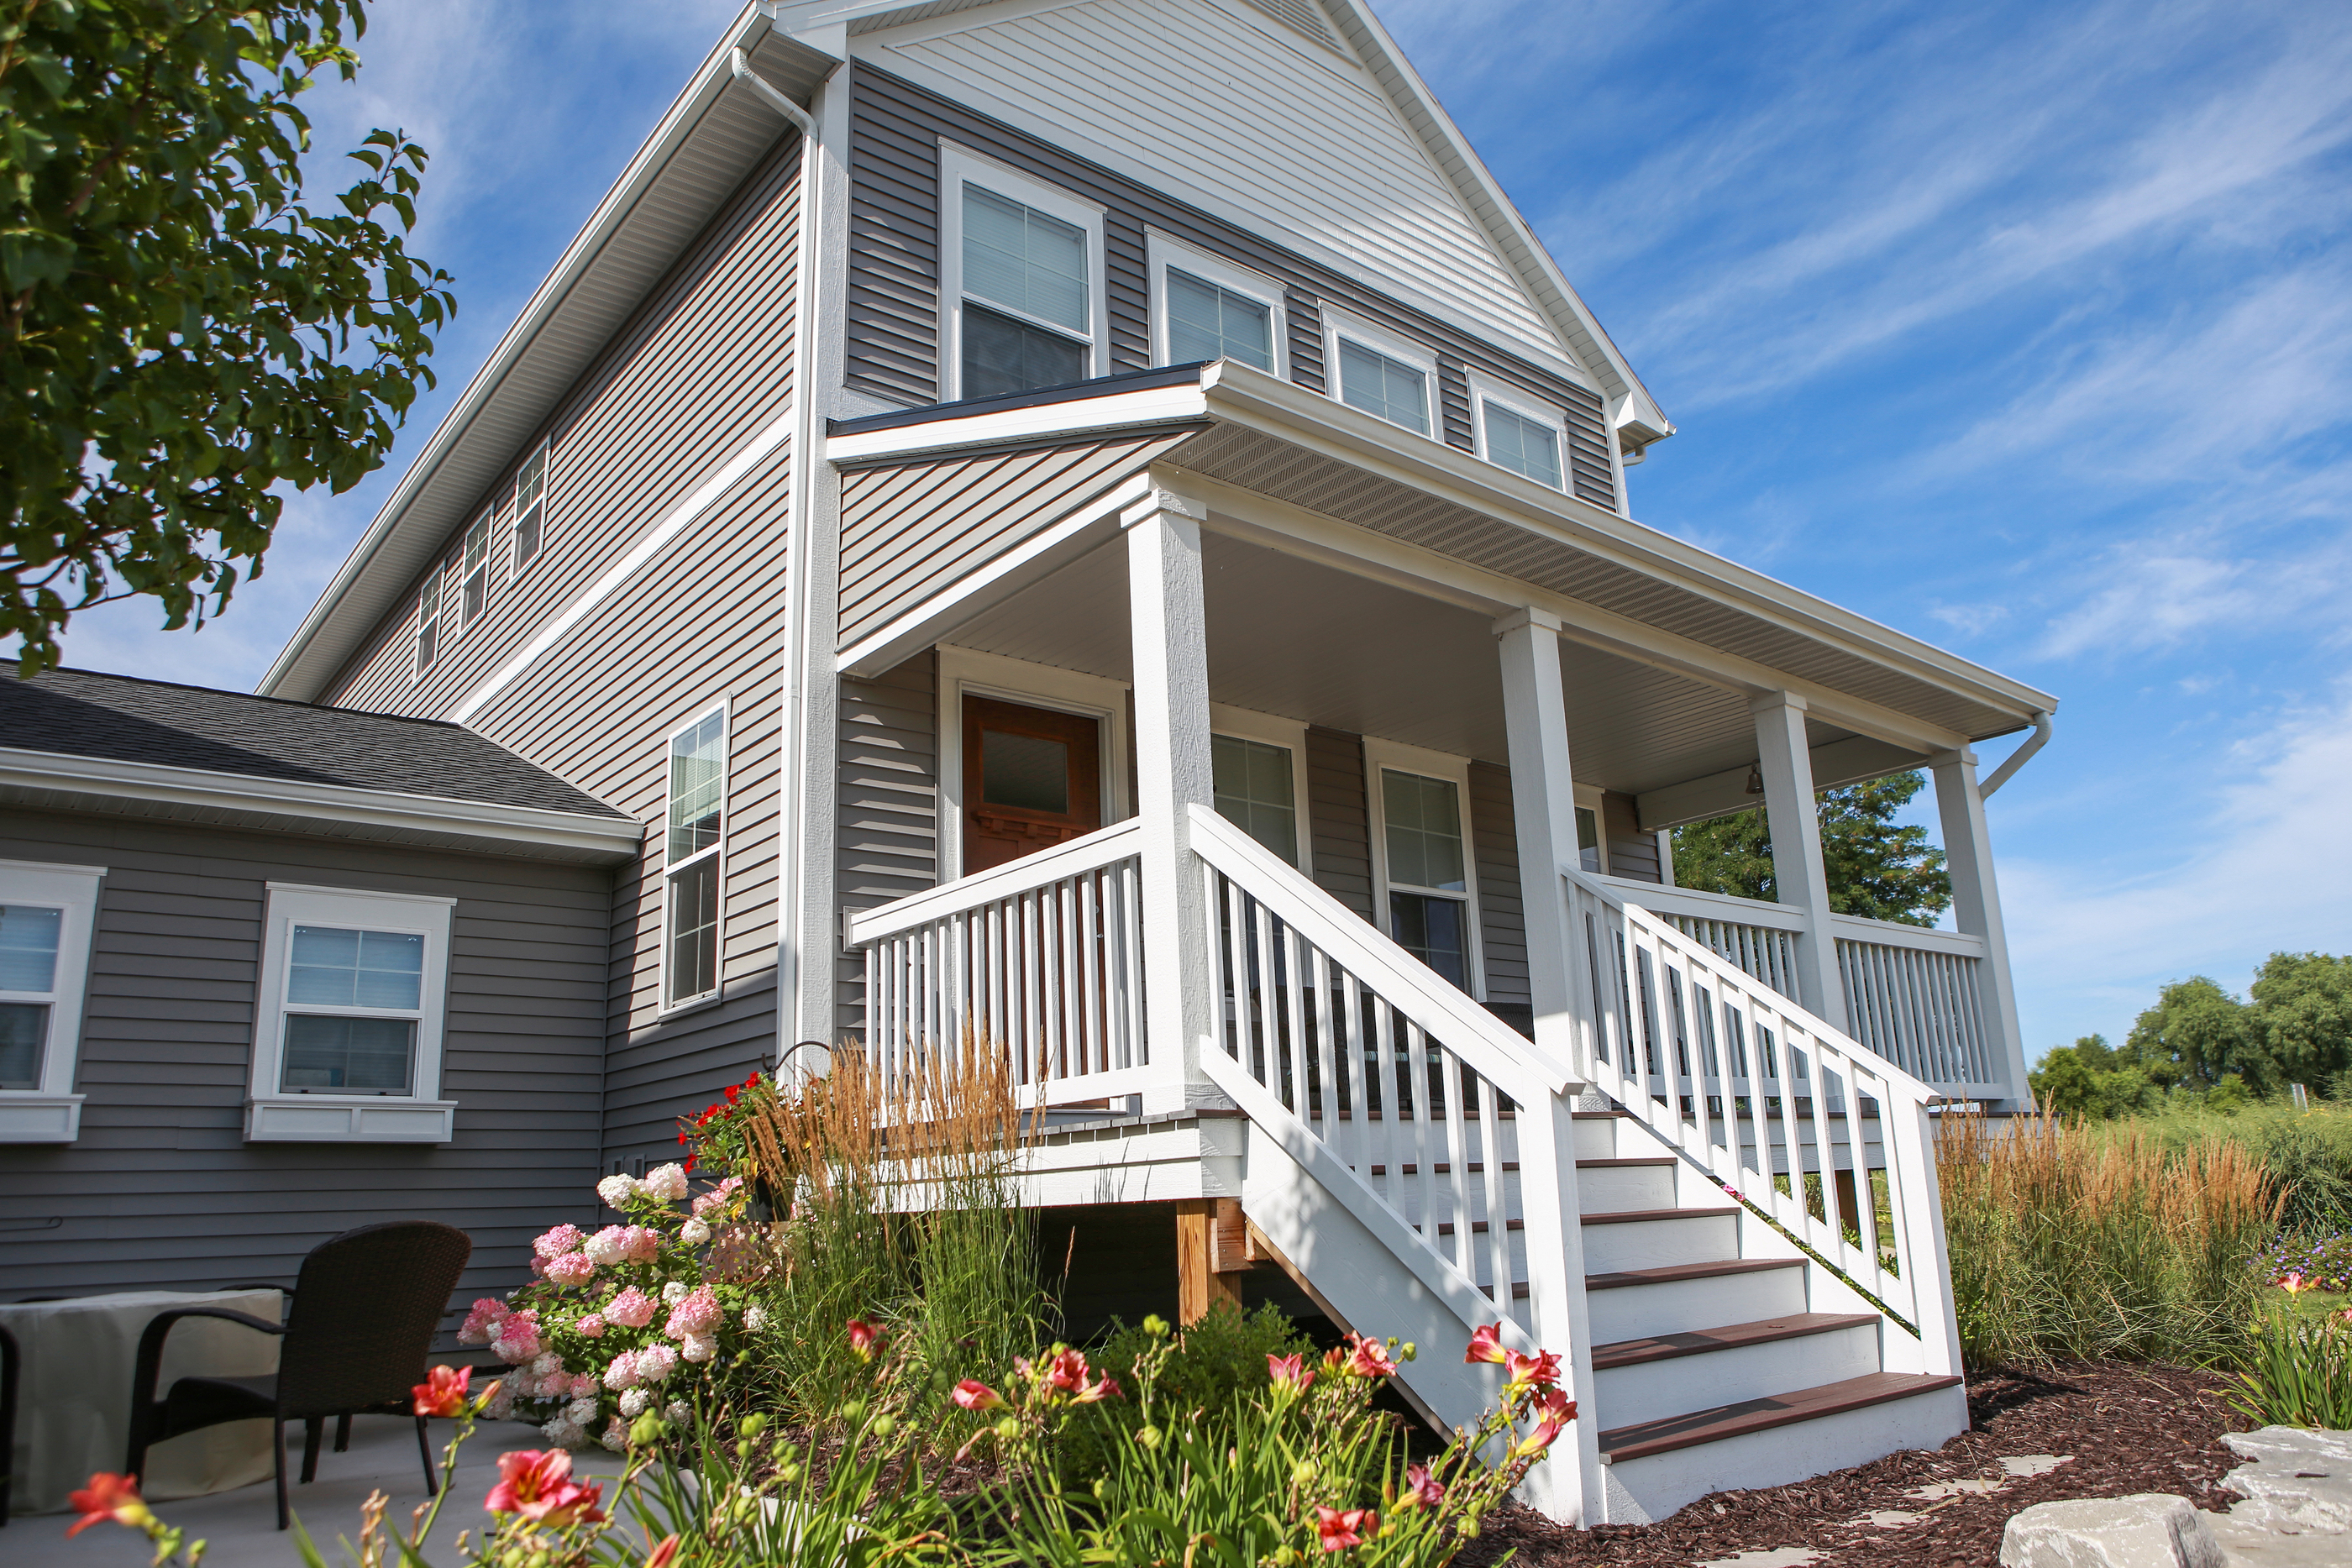 Coastal beach home constructed with vinyl siding and steps leading up to covered front porch